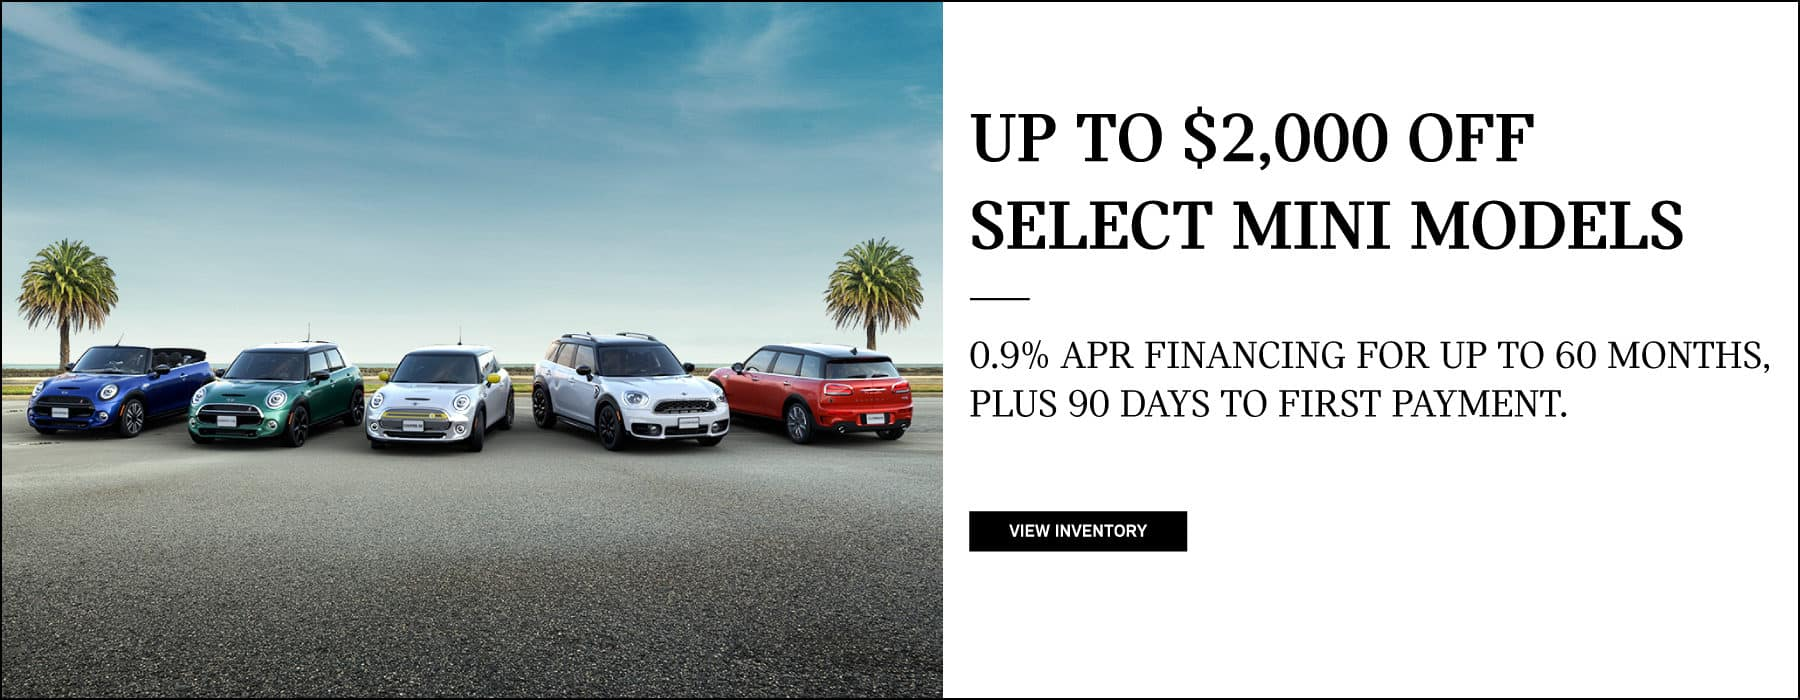 UP TO $2,000 OFF SELECT MINI MODELS. 0.9% APR FINANCING FOR UP TO 60 MONTHS, PLUS 90 DAYS TO FIRST PAYMENT. VIEW INVENTORY BUTTON. Must take vehicle delivery by 11/2/2020. Available on select new 2020 MINI models at participating MINI dealers, excluding Oxford Edition, GP, Cooper SE Electric, and Plug-in hybrid models. $2,000 off Cooper S Hardtop 2 Door, JCW Hardtop 2 Door, Cooper S Hardtop 4 Door, Cooper S Clubman, Cooper S Clubman ALL4, JCW Clubman, Cooper S Countryman, Cooper S Countryman ALL4, JCW Countryman models; $1,500 off Cooper Hardtop 2 Door, Cooper Hardtop 4 Door, Cooper S Convertible, JCW Convertible, Cooper Countryman and Cooper Countryman ALL4 models; $1,000 off Cooper Convertible model. Certain exclusions apply. The cash off is applied against final purchase price. Certain exclusions apply. Valid on final negotiated price and can be combined with certain other MINI offers that are available at the time of purchase. Credits cannot be applied toward tax, title, registration, destination, handling, or other dealership fees. Options may be limited due to product availability at time of sale. Offered through MINI Financial Services by participating MINI dealers through 11/02/20. 0.9% Financing provided to well-qualified customers who meet MINI Financial Services' credit requirements. Other rates are available. All offers are subject to credit approval and availability from existing retailer inventory. Retailer prices will vary and affect customer cost. A 60 month finance contract for a new 2020 MINI model, Oxford Edition excluded, and an APR of 0.9%, requires 60 monthly installments of $17.05 per $1,000 financed. No Down payment required. Taxes, title and registration fees extra. Customer liable for insurance, maintenance and repairs. See your authorized MINI Dealer for complete details. Customers with excellent credit history and meeting all MINI Financial Services credit requirements who purchase a new or used MINI model may defer monthly payments for 90 days from contract signing. This offer is available on retail installment contracts of up to 72 months for new MINI vehicles and up to 60 months on used MINI vehicles. Interest will accrue during 90-day period. Not all customers will qualify. Other financing options are available. Offer is only available on traditional retail installment contracts financed through MINI Financial Services, and is not available on Select, OwnersChoice, Lease, and Pre-Pay contracts. This offer is also not available to customers in Pennsylvania. Contact your authorized MINI dealer for important details. Offer valid through 11/2/20. ©2020 the MINI name, model names and logo are registered trademarks.